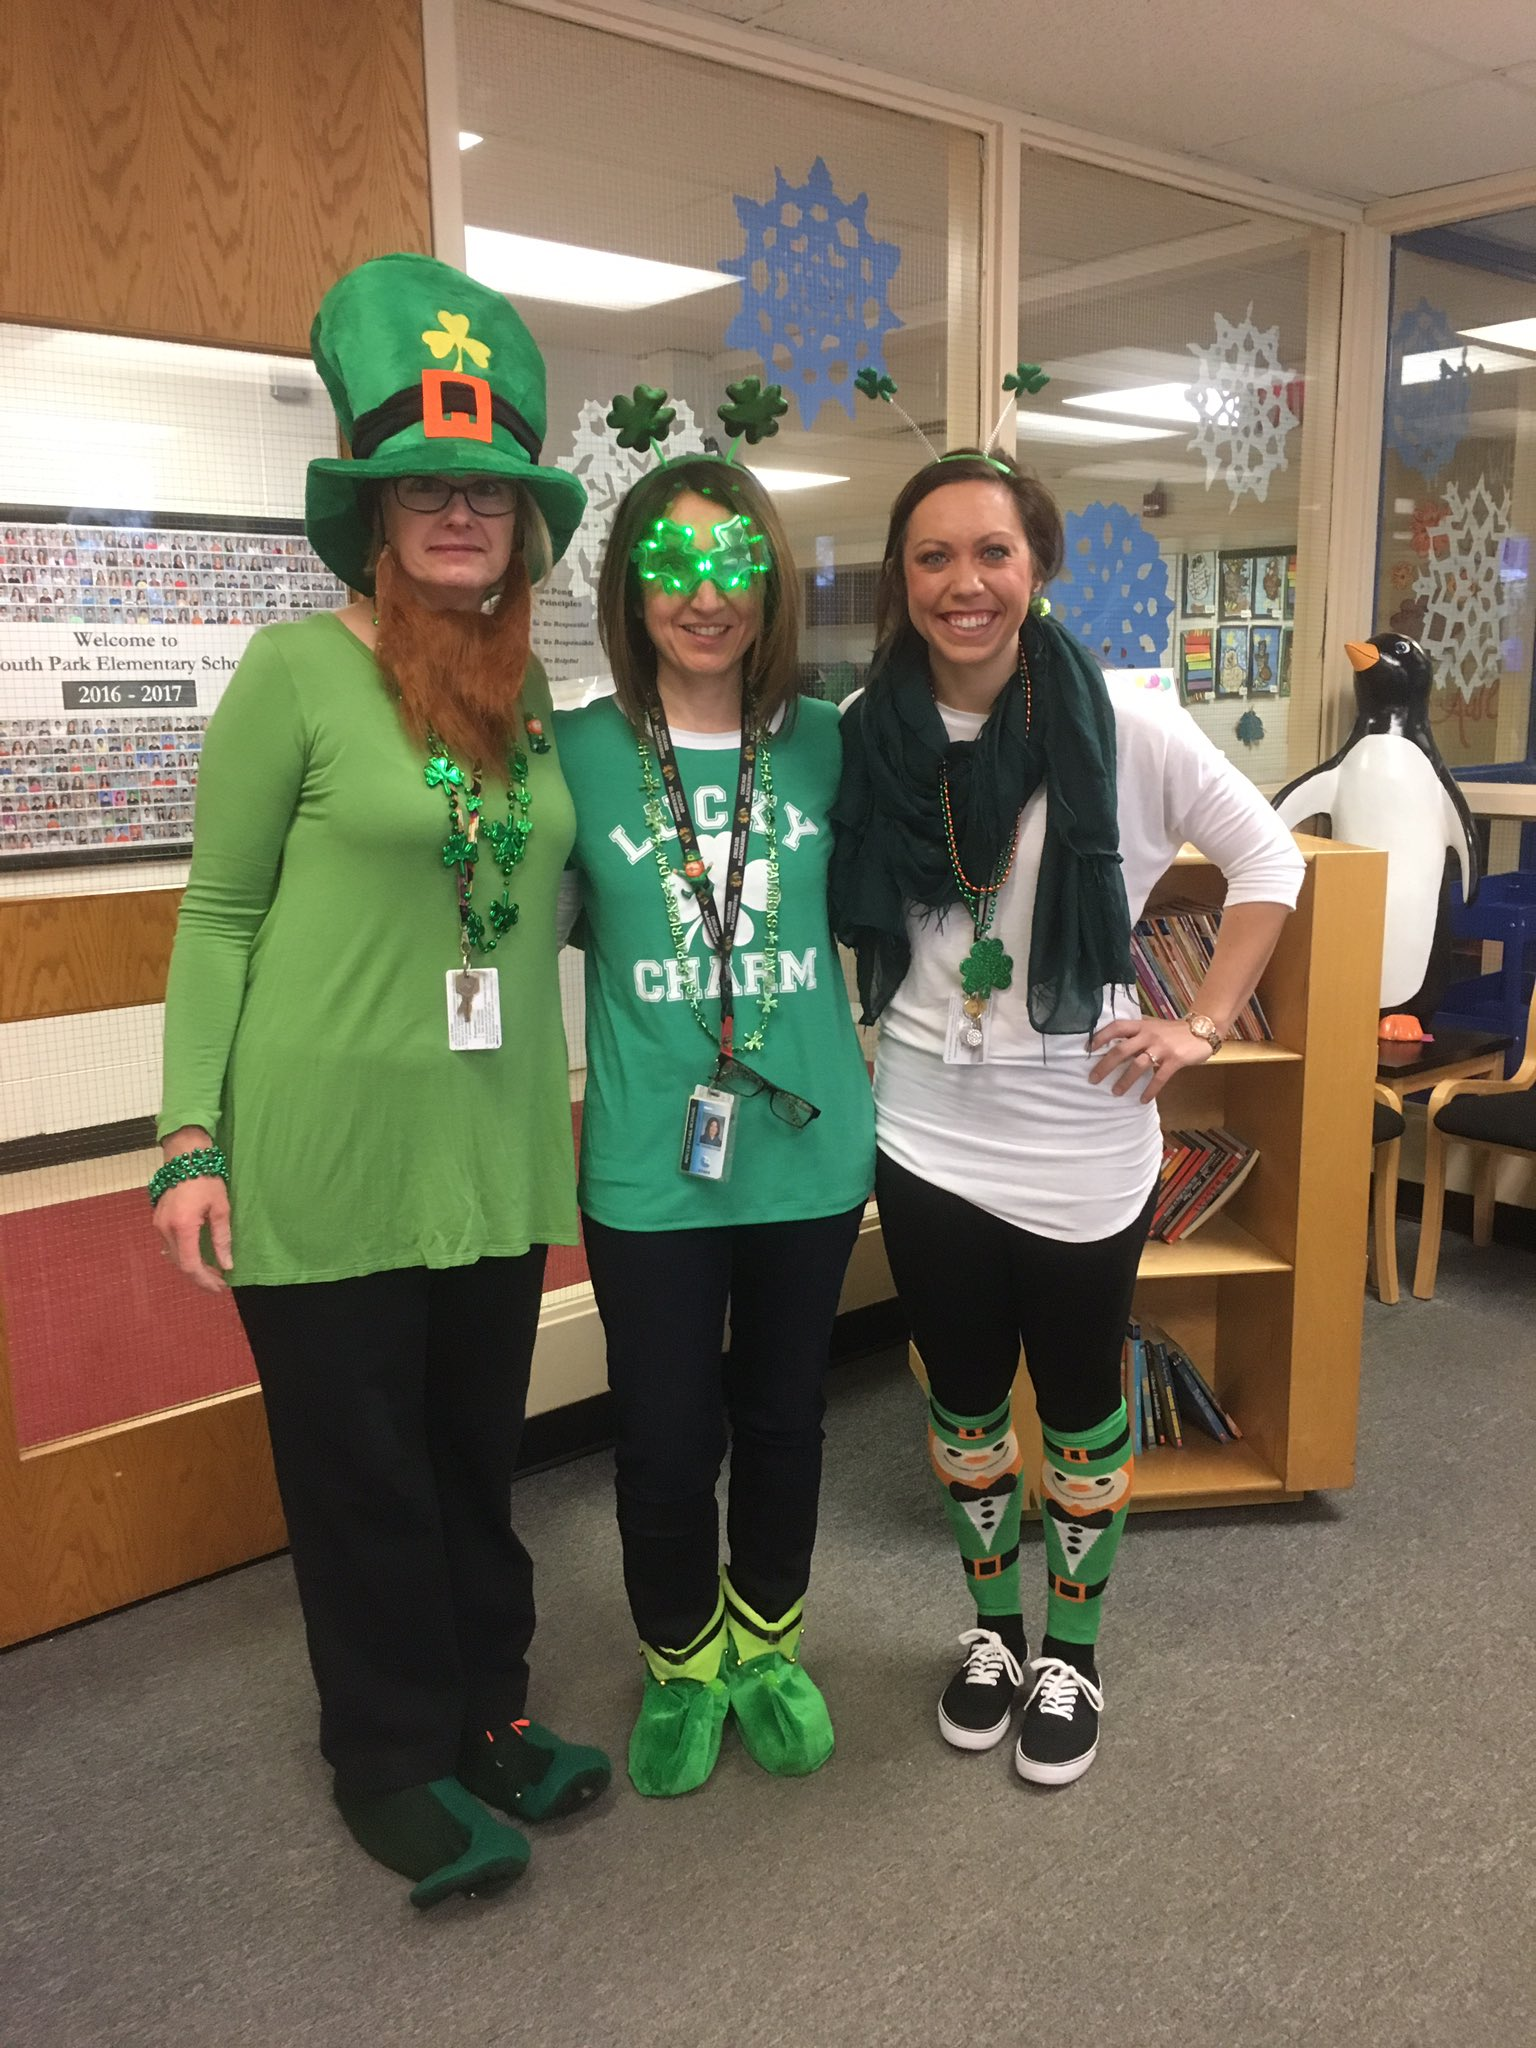 @109SouthPark Kindy teachers are ready for St Patrick's Day! #engage109 #sp109 @Kndrgrtn @misskelly109 @nvaggelatos https://t.co/fc7c18ew4o